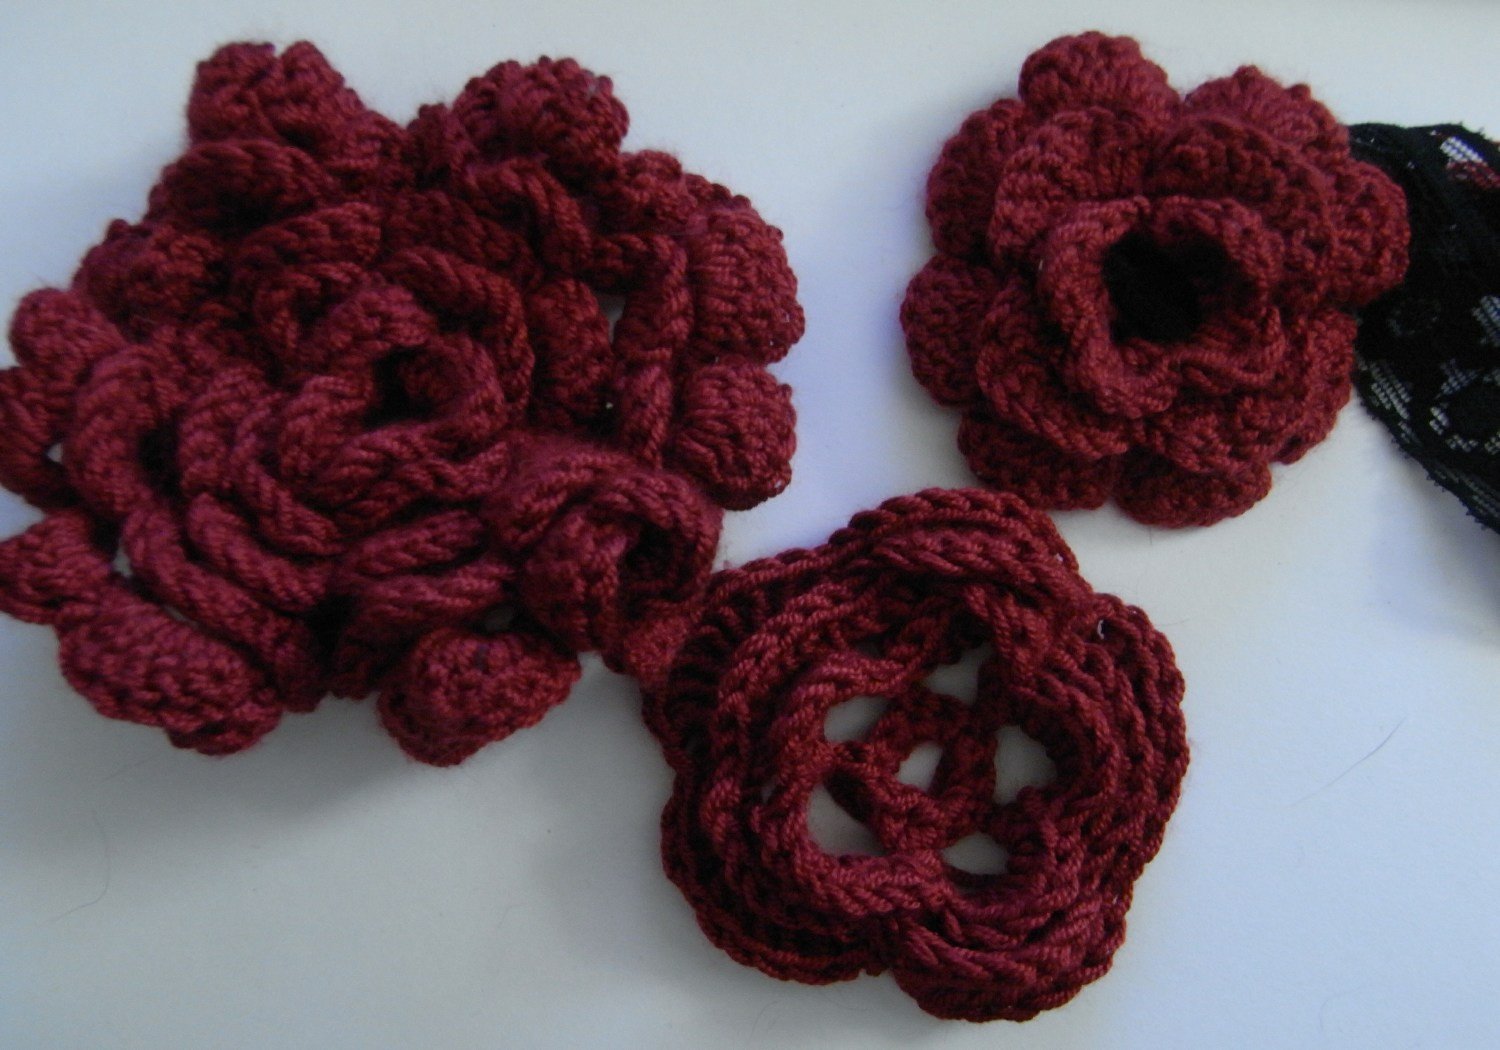 Simple Crochet Patterns Beautiful Patterns for Crocheted Flowers – Easy Crochet Patterns Of Delightful 49 Models Simple Crochet Patterns